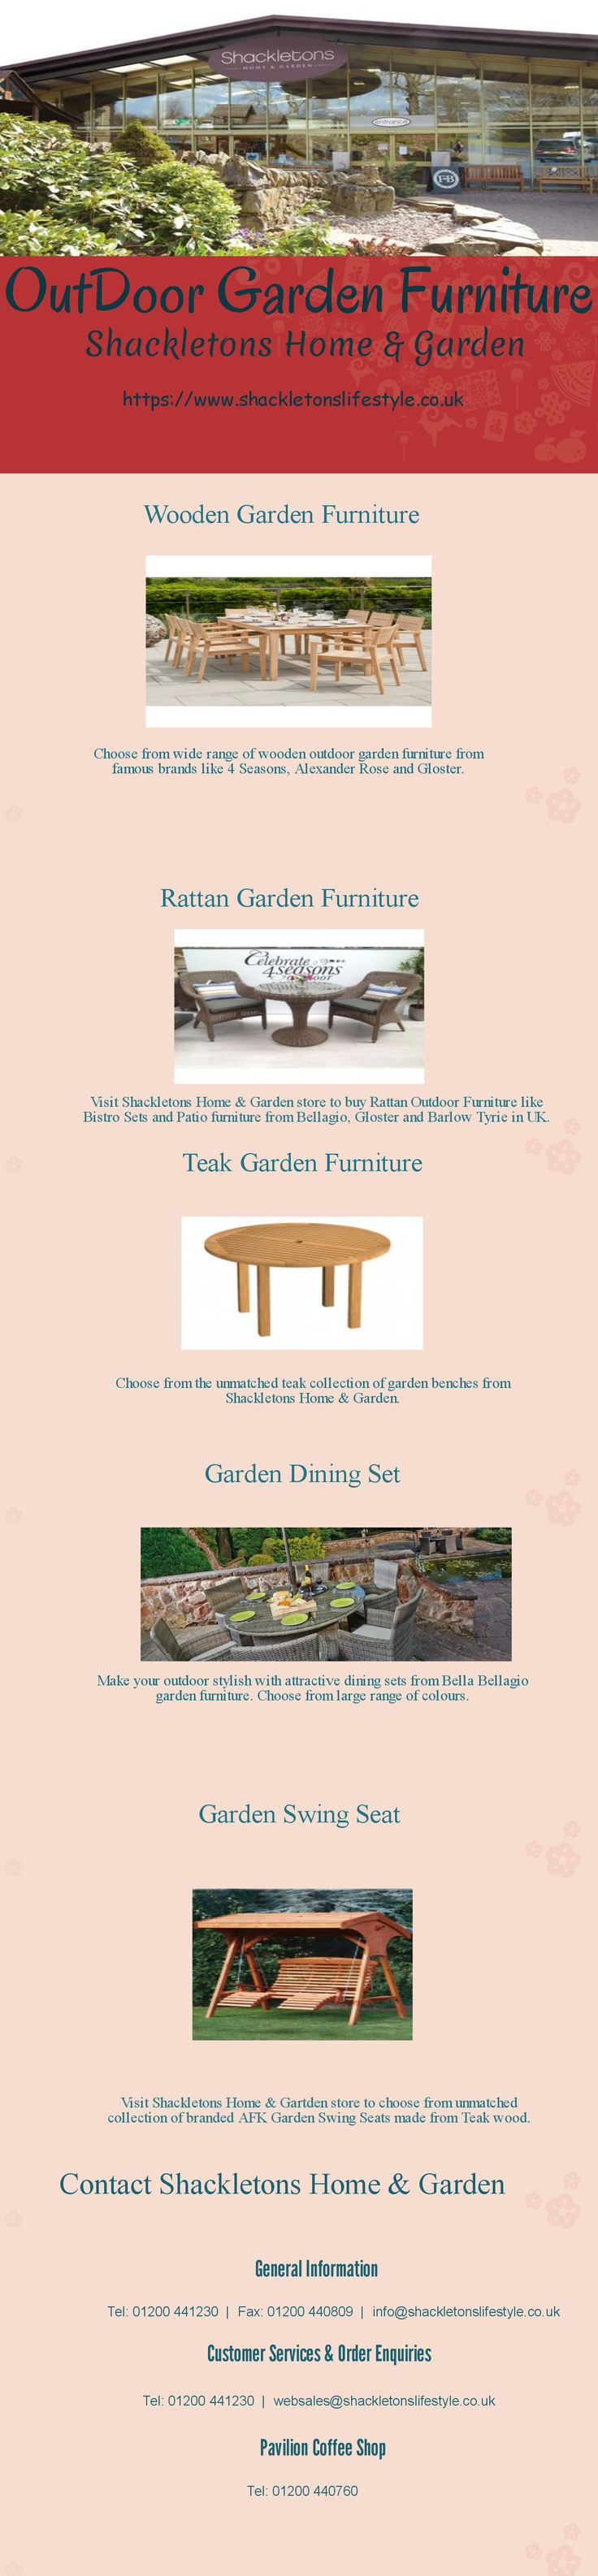 Buy luxury outdoor garden furniture from Shackletons Home   Garden  including garden tables  sofa. 21 best images about Shackletons Home and Garden furniture on